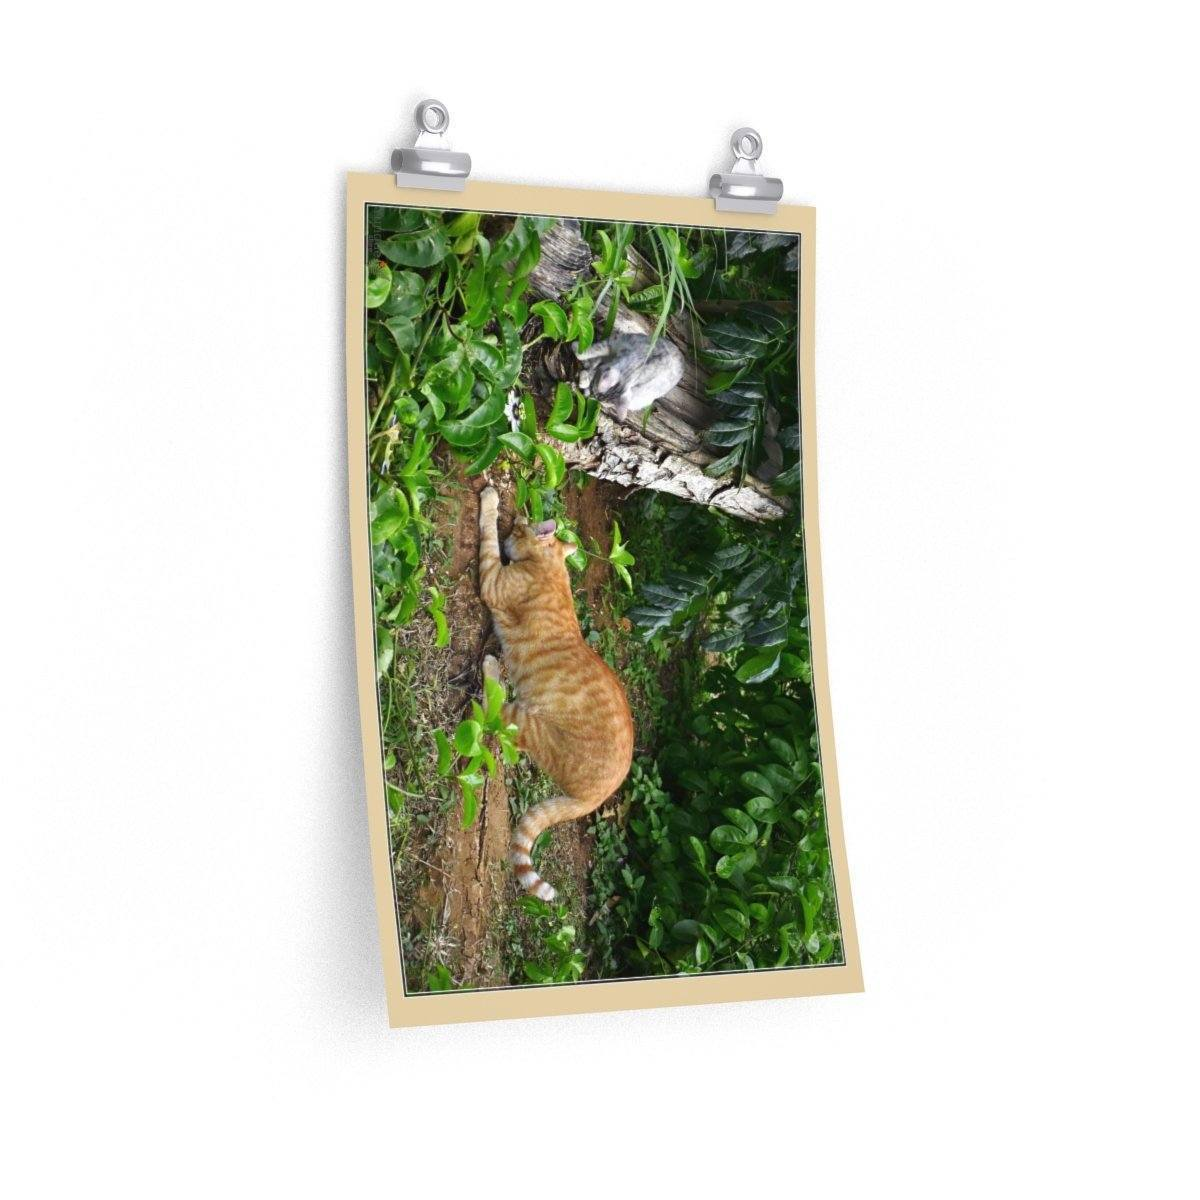 Low cost top-quality Posters - PR Pets and Animals - The Cats Play Poster Printify